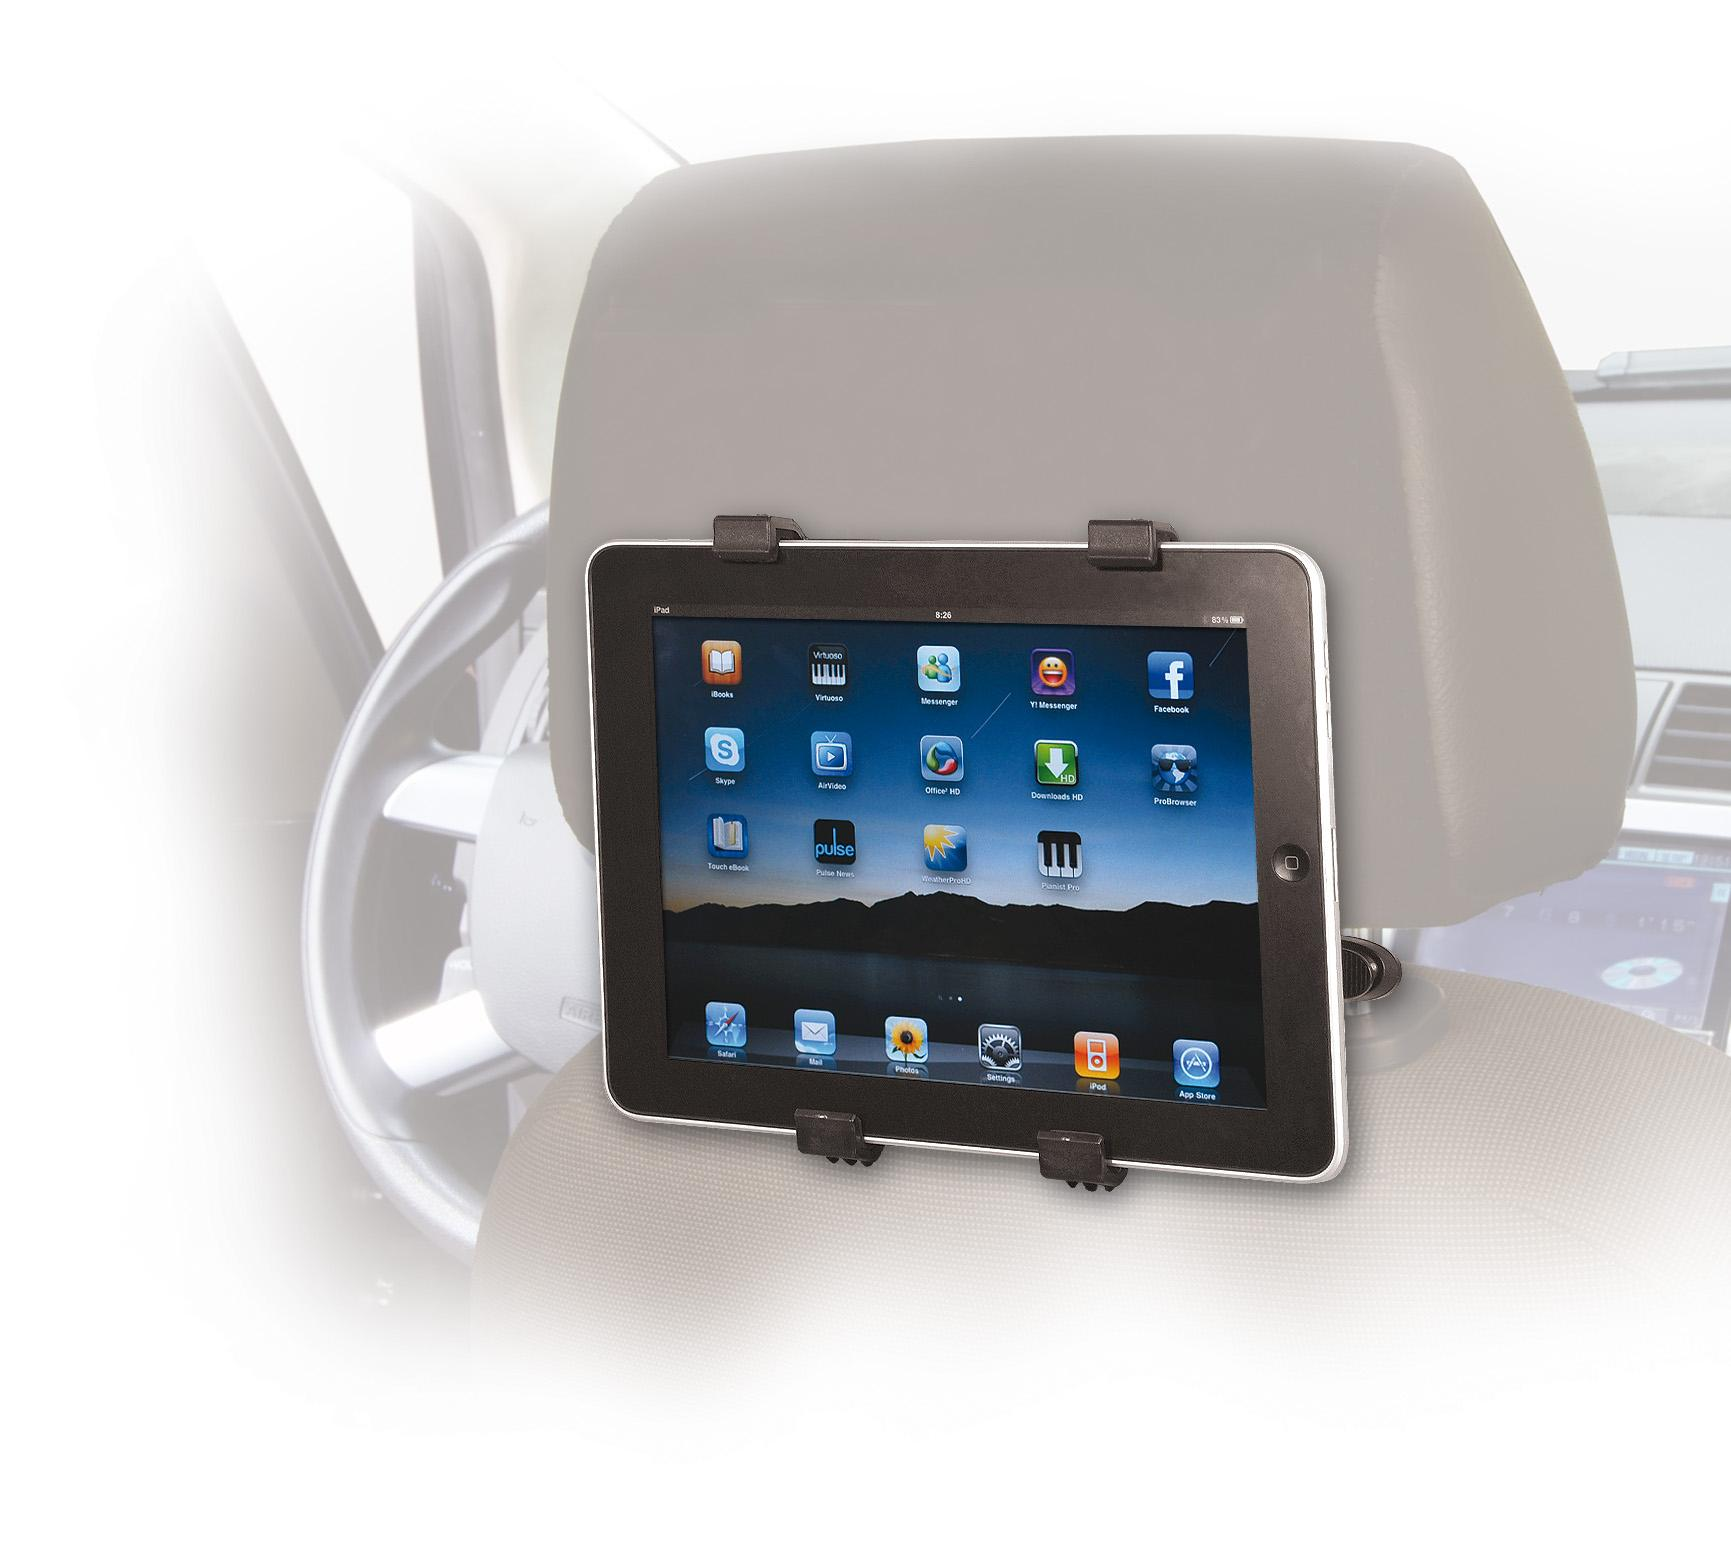 Amazon.com: SIIG Headrest Car Mount for iPad (CE-MT0E12-S1 ...